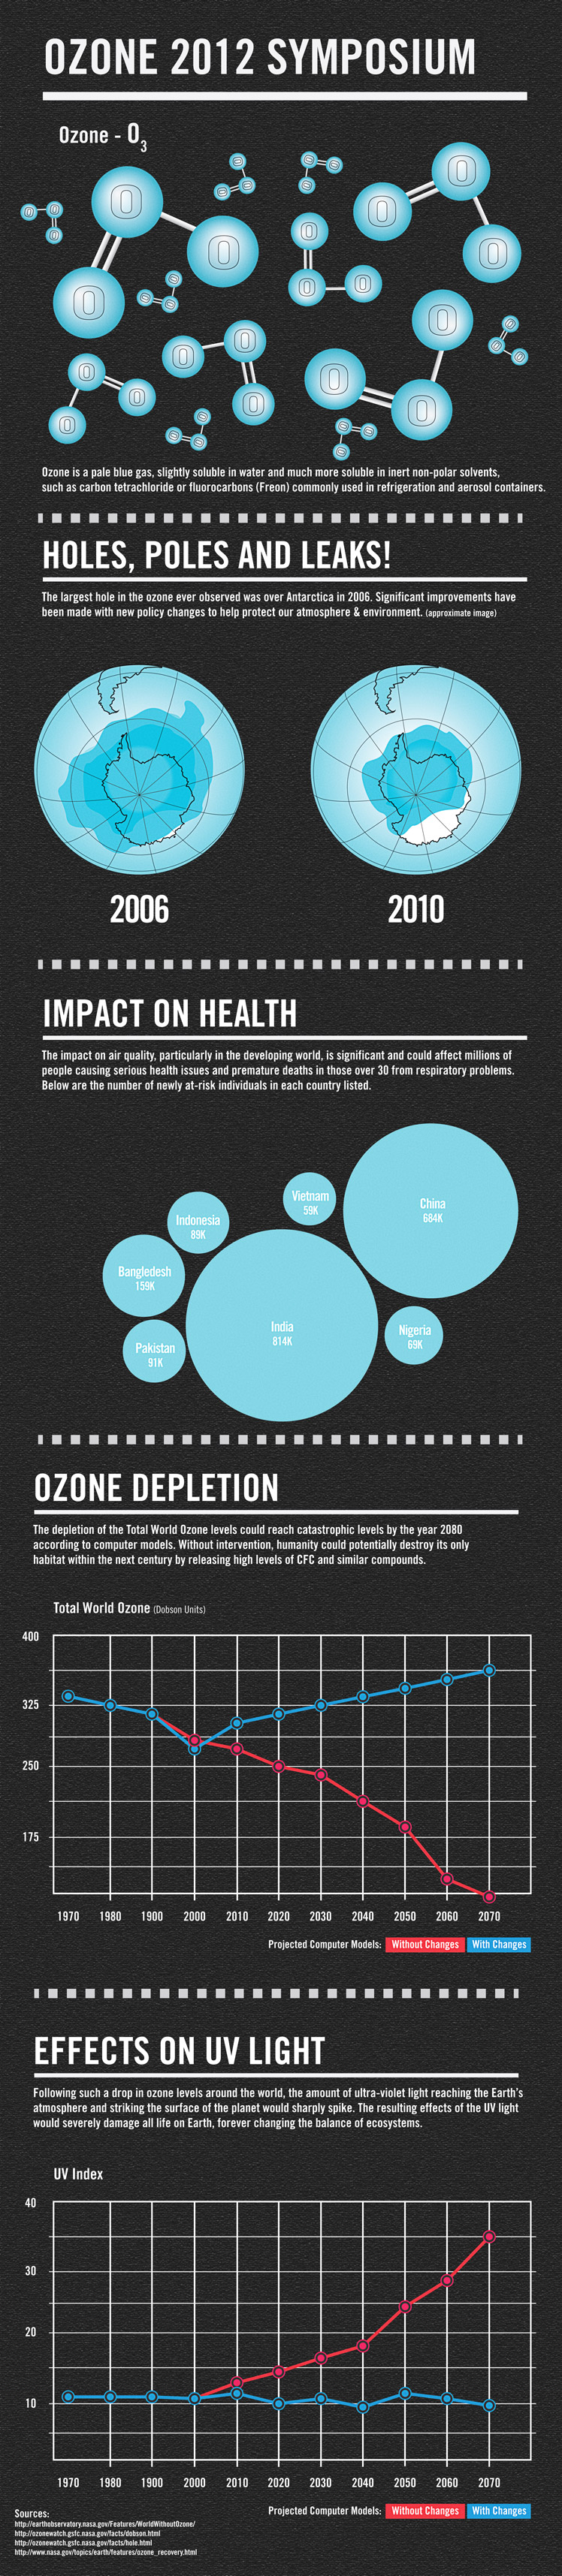 ozone depletion and world ozone Ozone depletion refers to the thinning and loss of ozone whereas global what is the difference between ozone depletion and global 1989 views around the world.